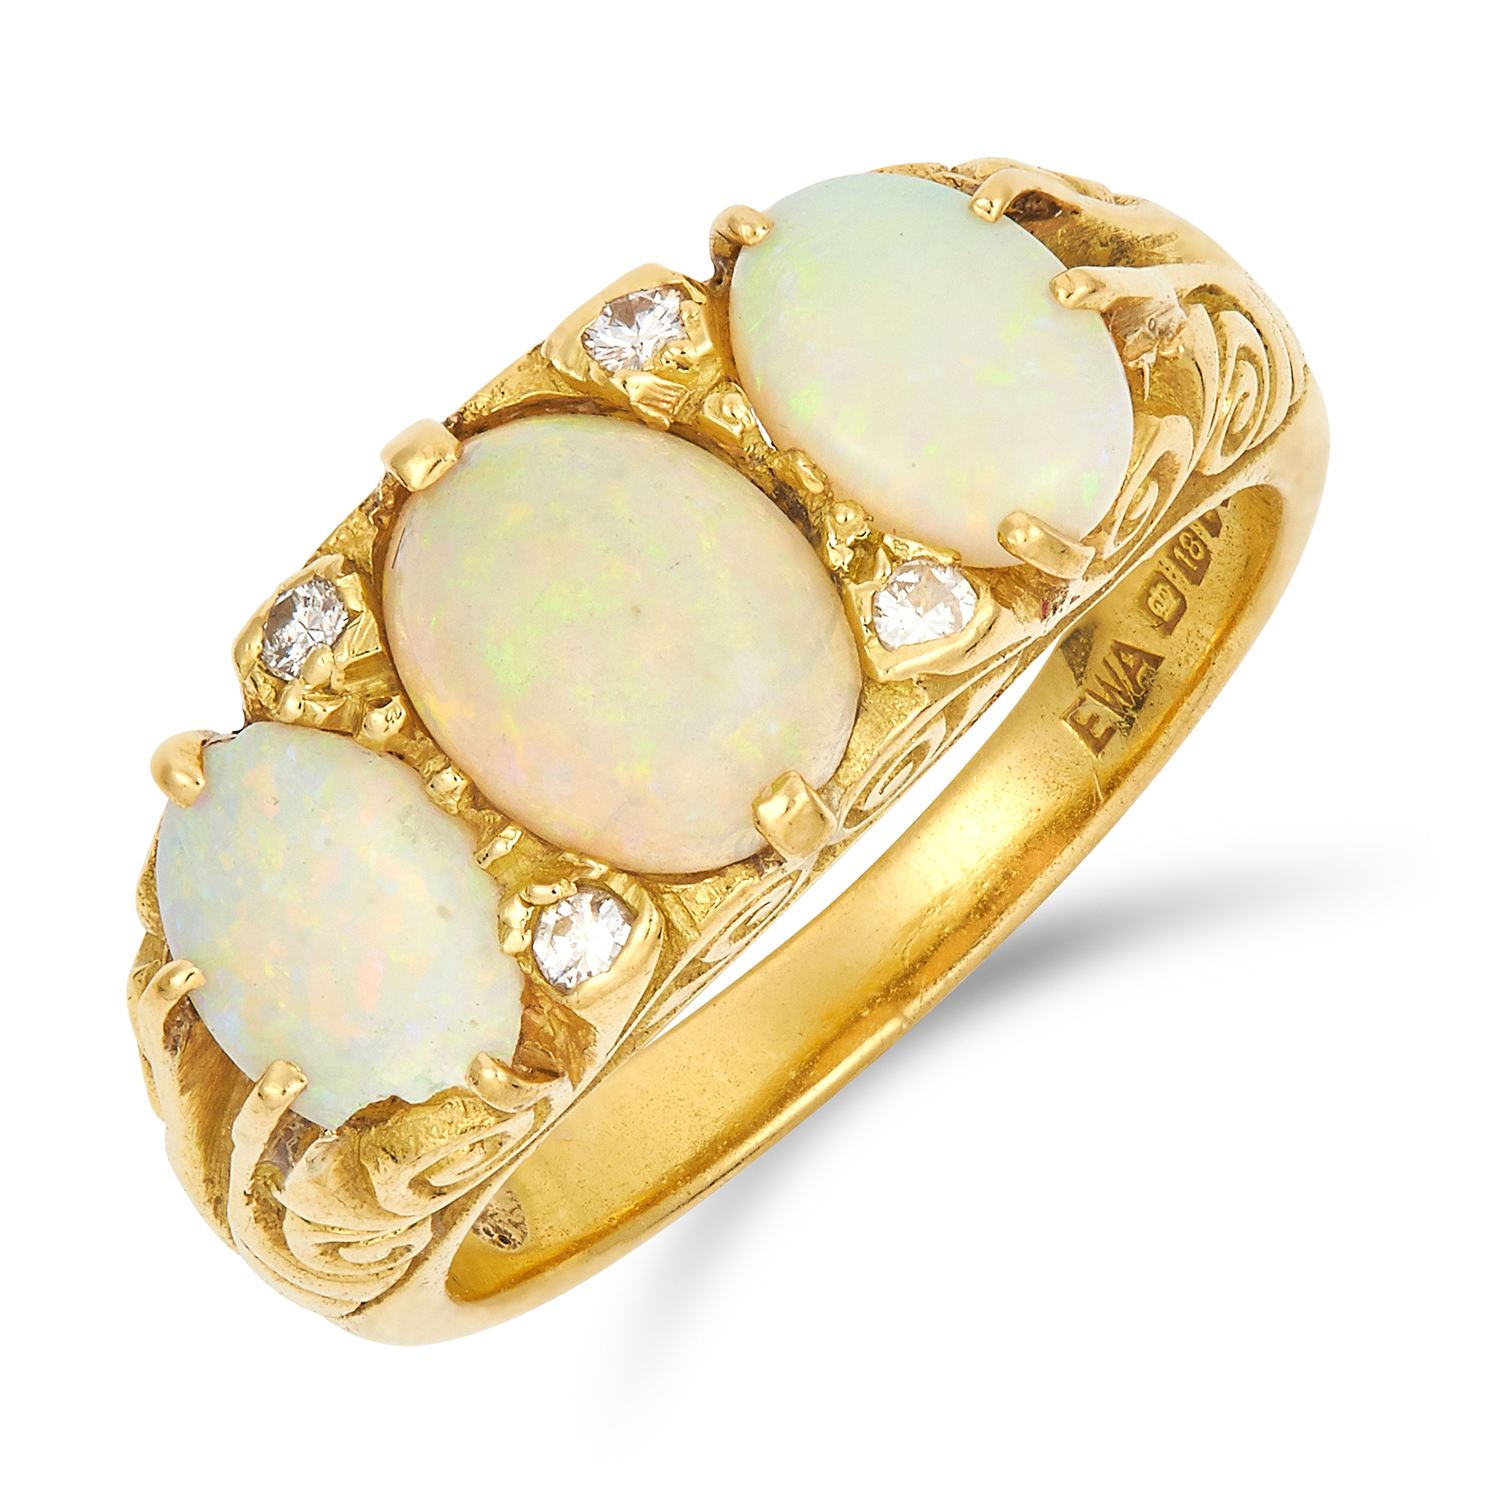 Los 46 - OPAL AND DIAMOND RING set with three graduated oval cabochon opals and round cut diamonds, size